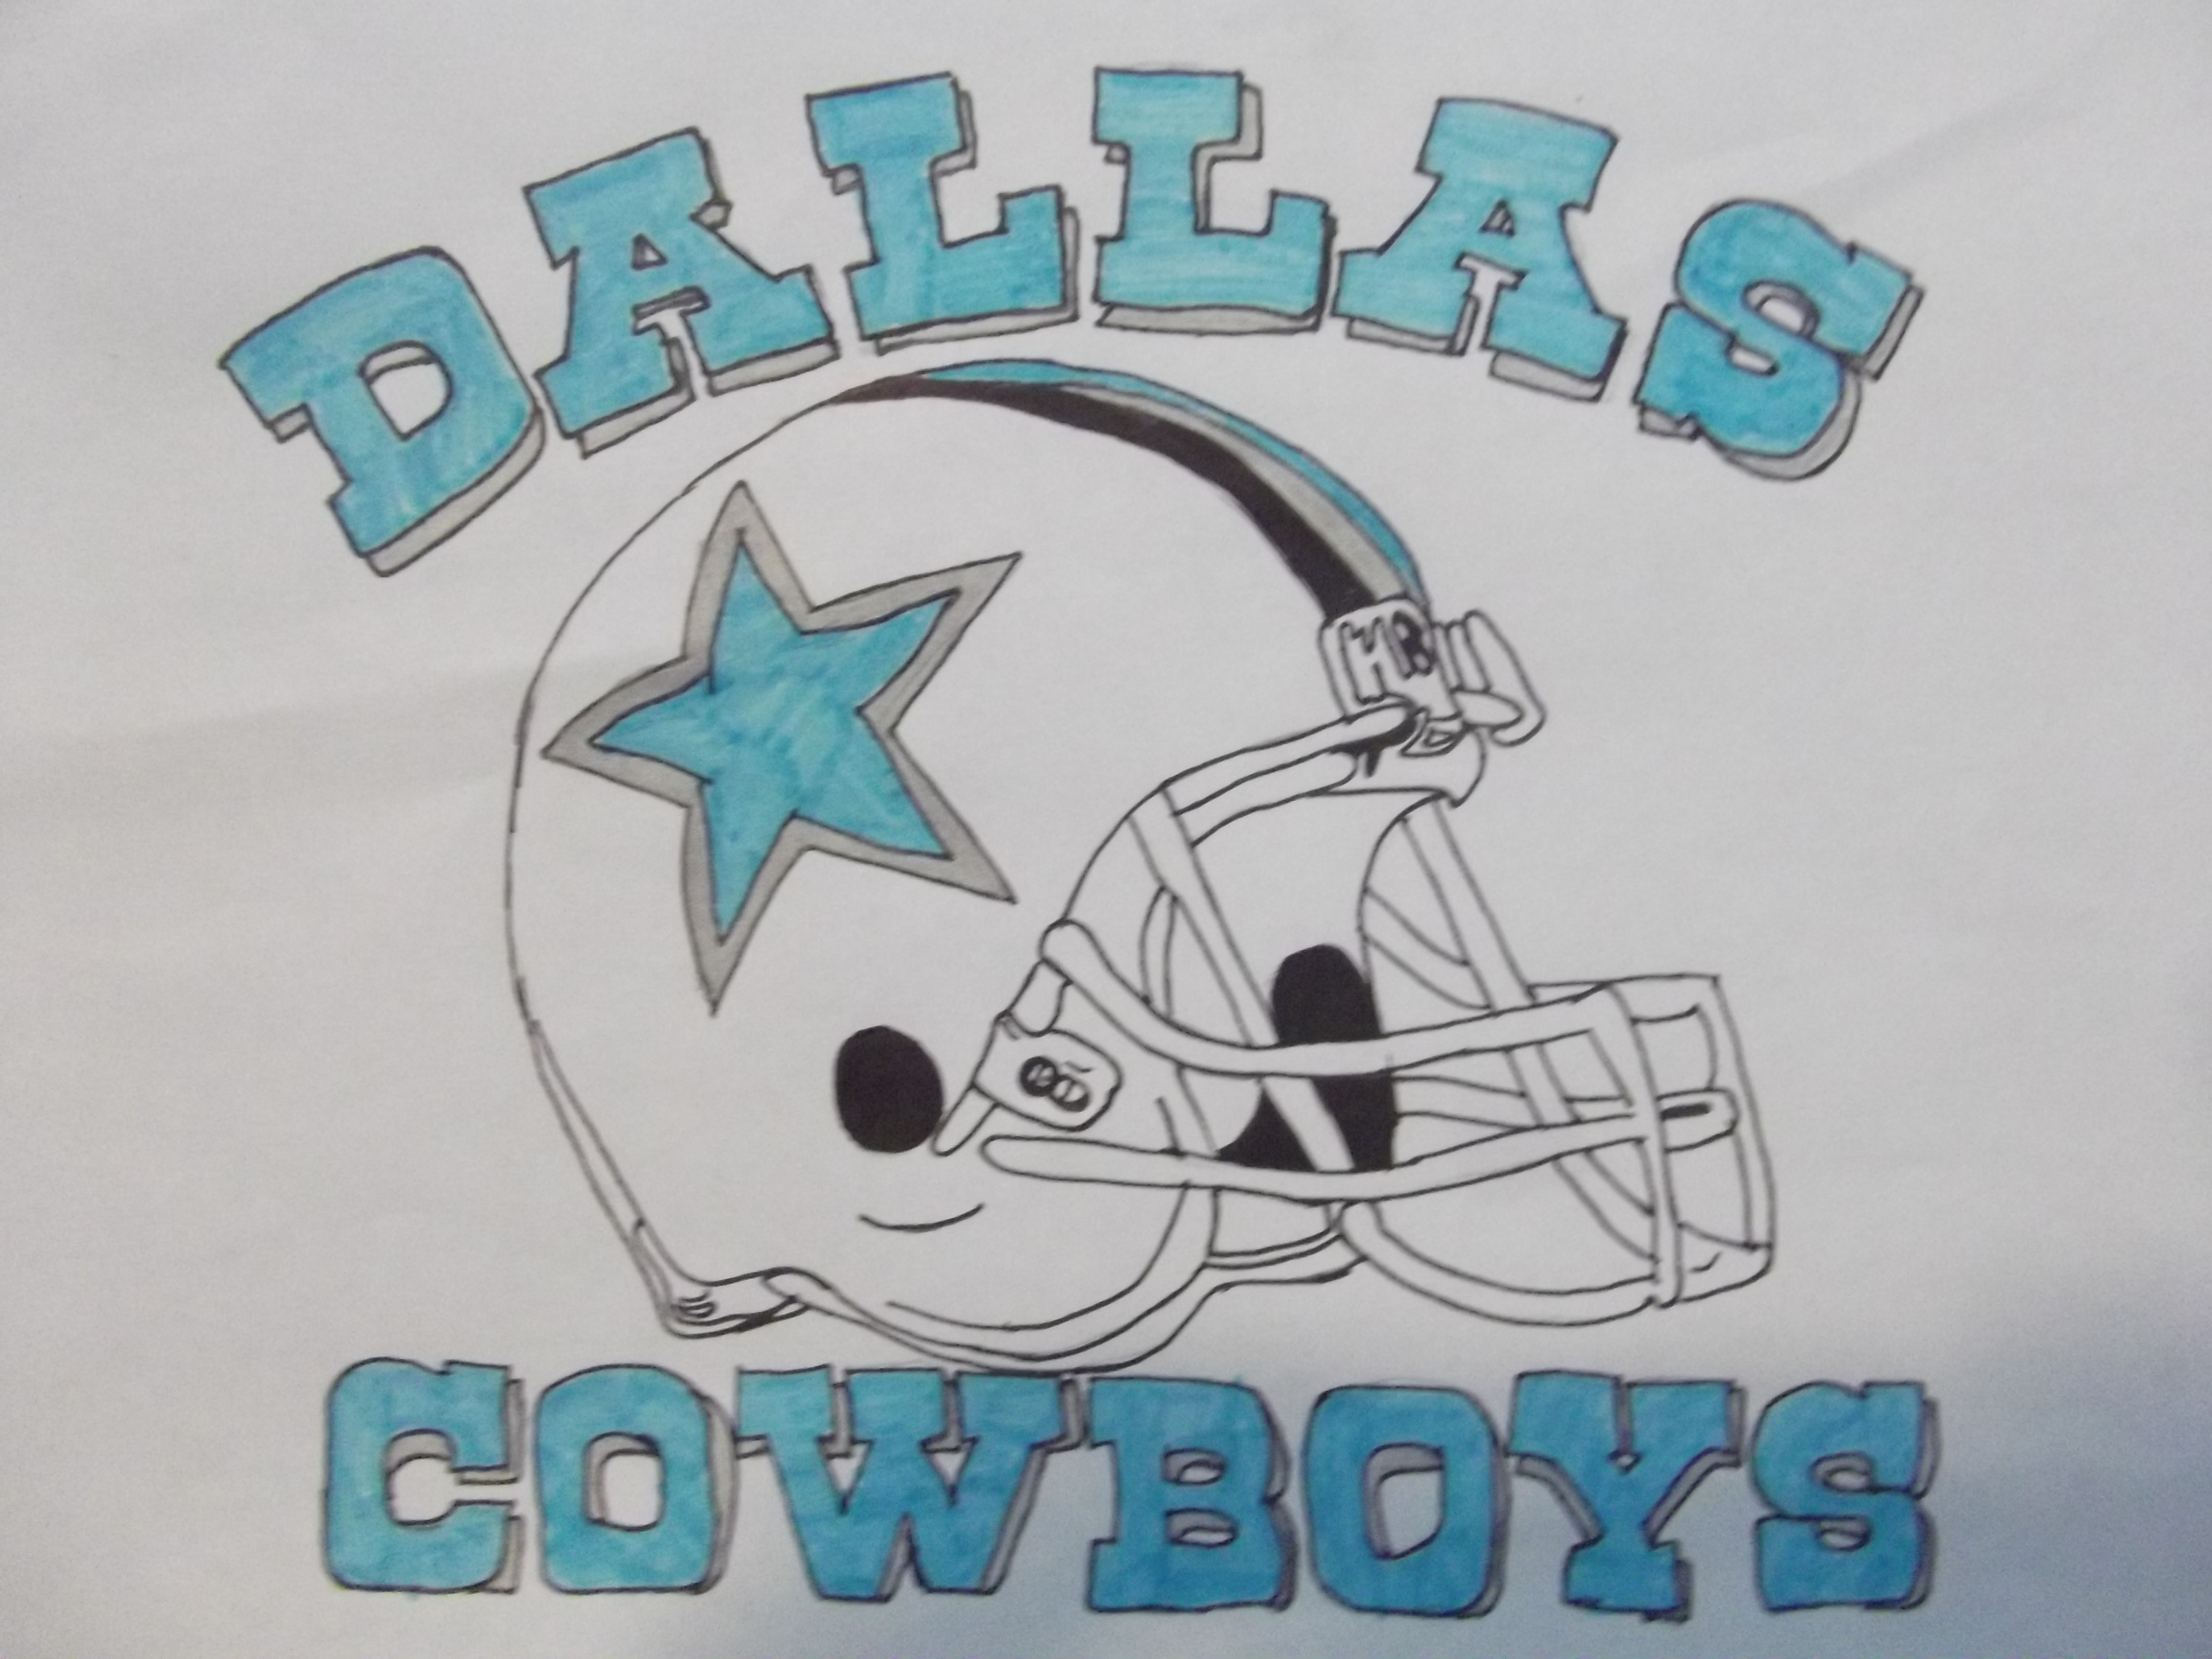 4288x3216 Dallas Cowboys Drawings Cowboy Star Clipart